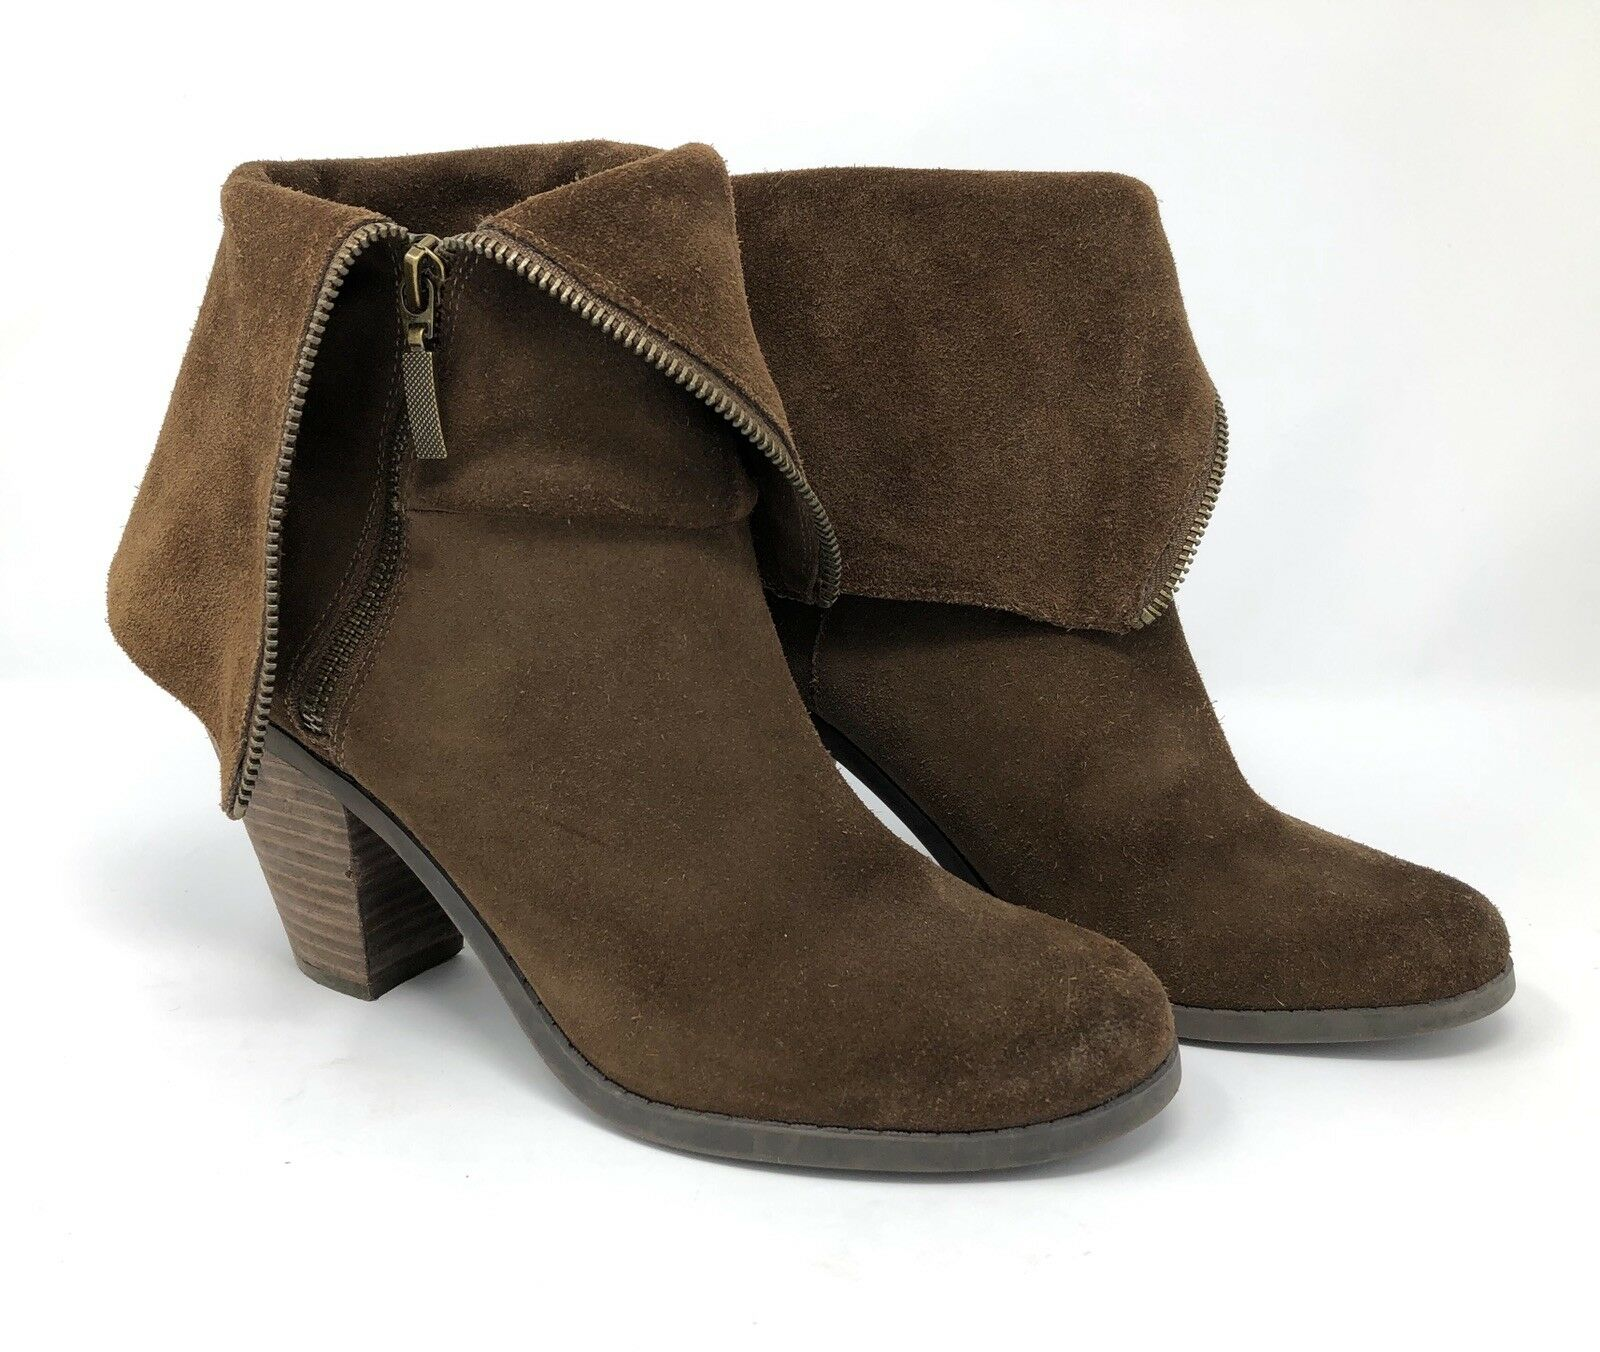 ADAM TUCKER Me Too Size 10 Womens Ankle Boots Pelican Brown Suede Fold Down